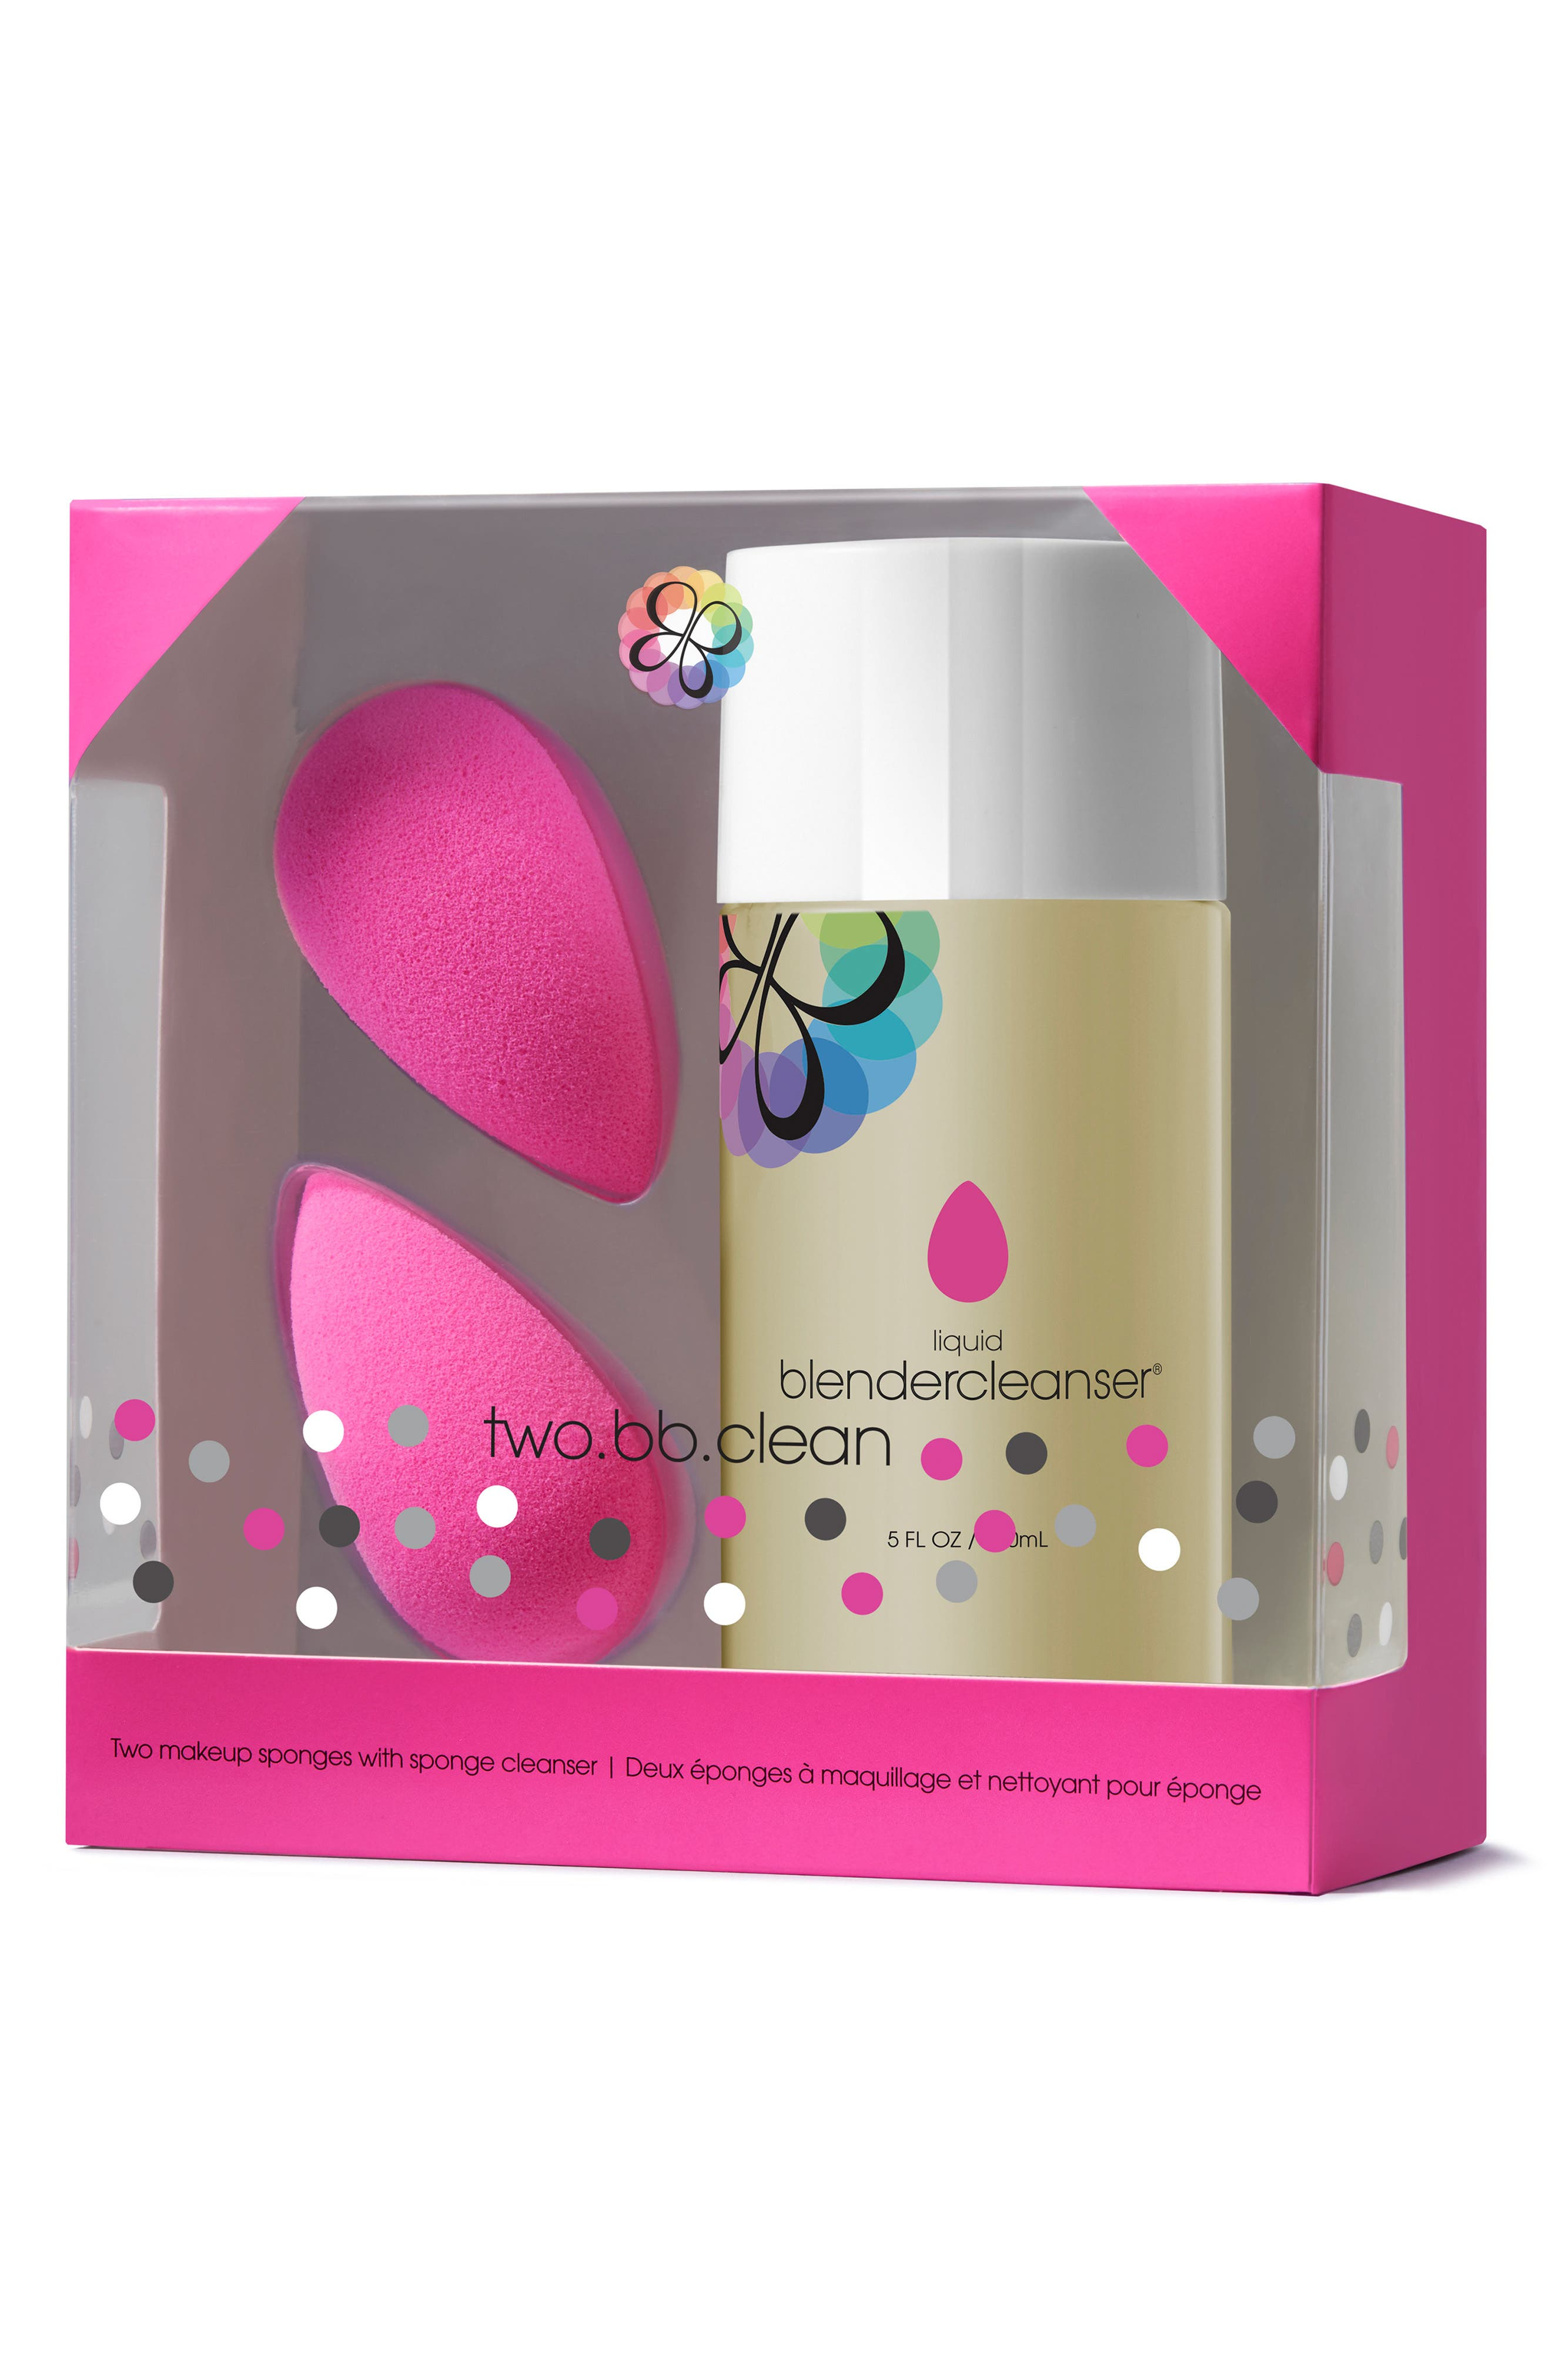 beautyblender® two.bb.clean Set ($58 Value)